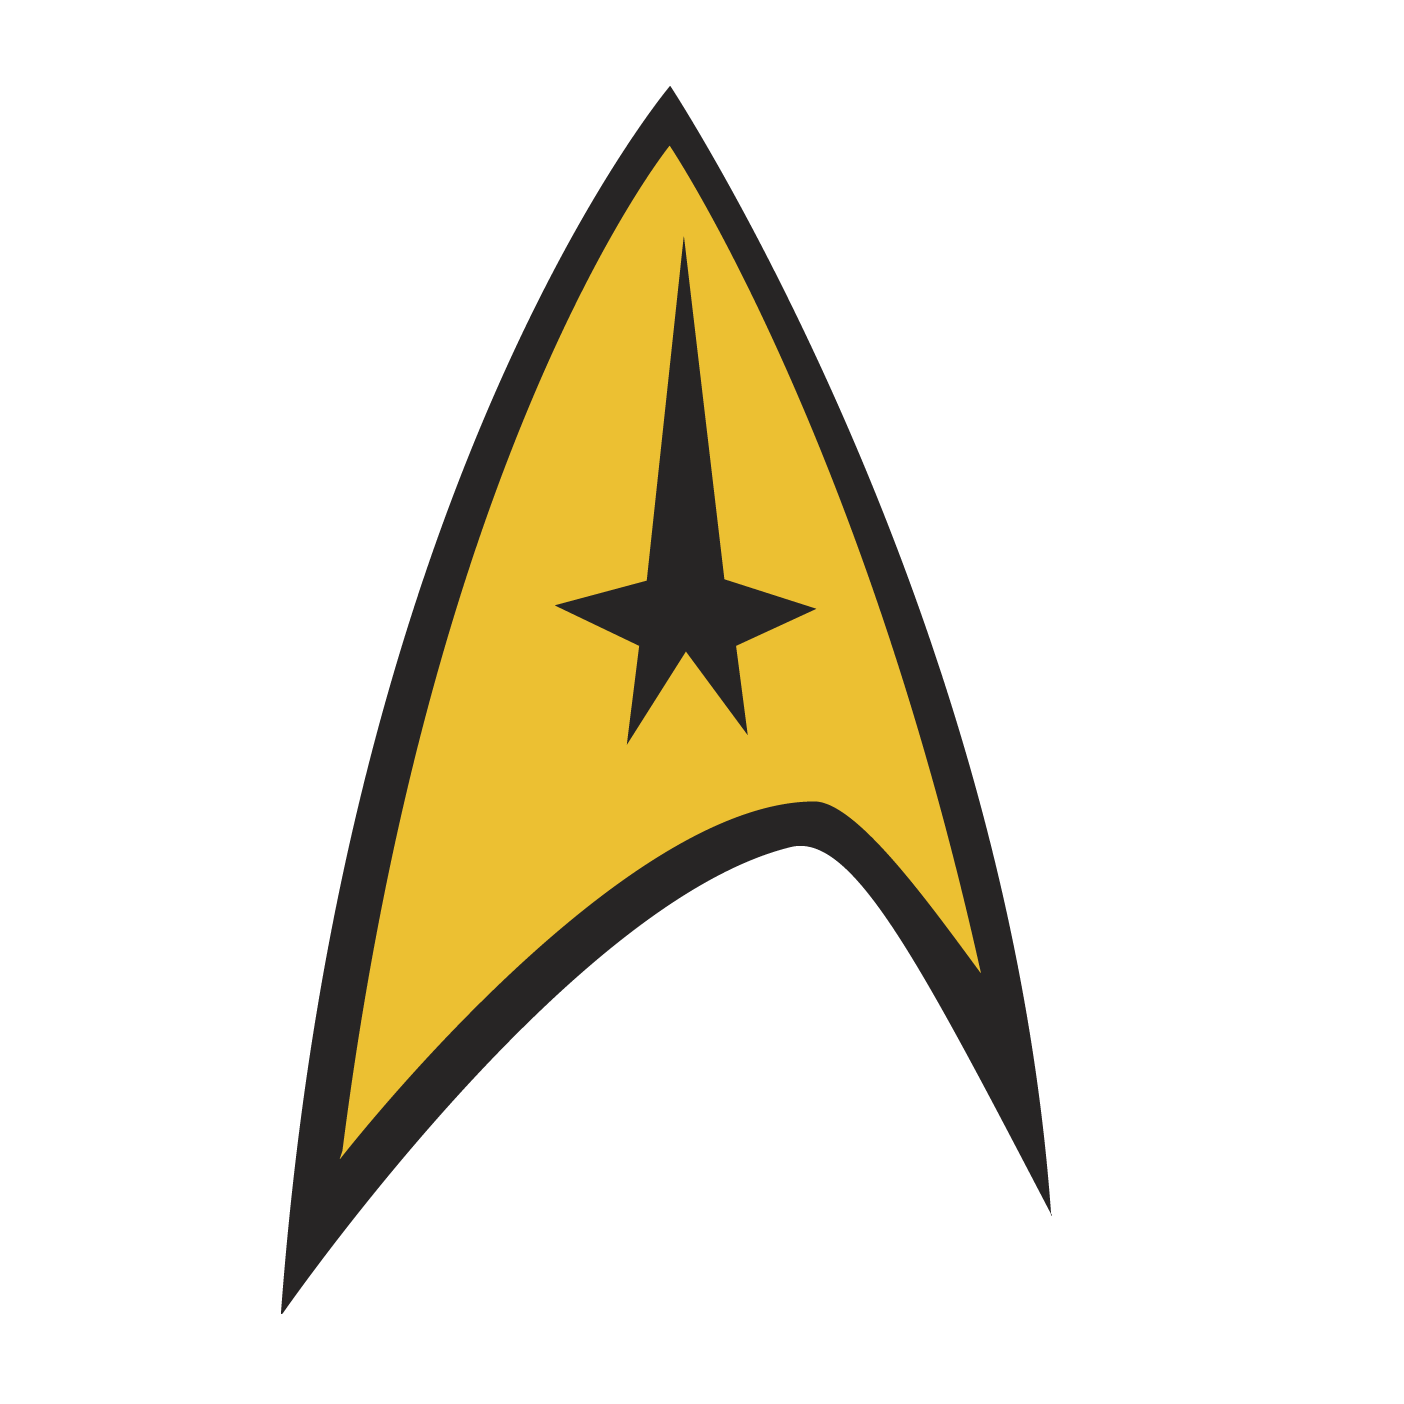 Star trek png icons. Free icon download movies